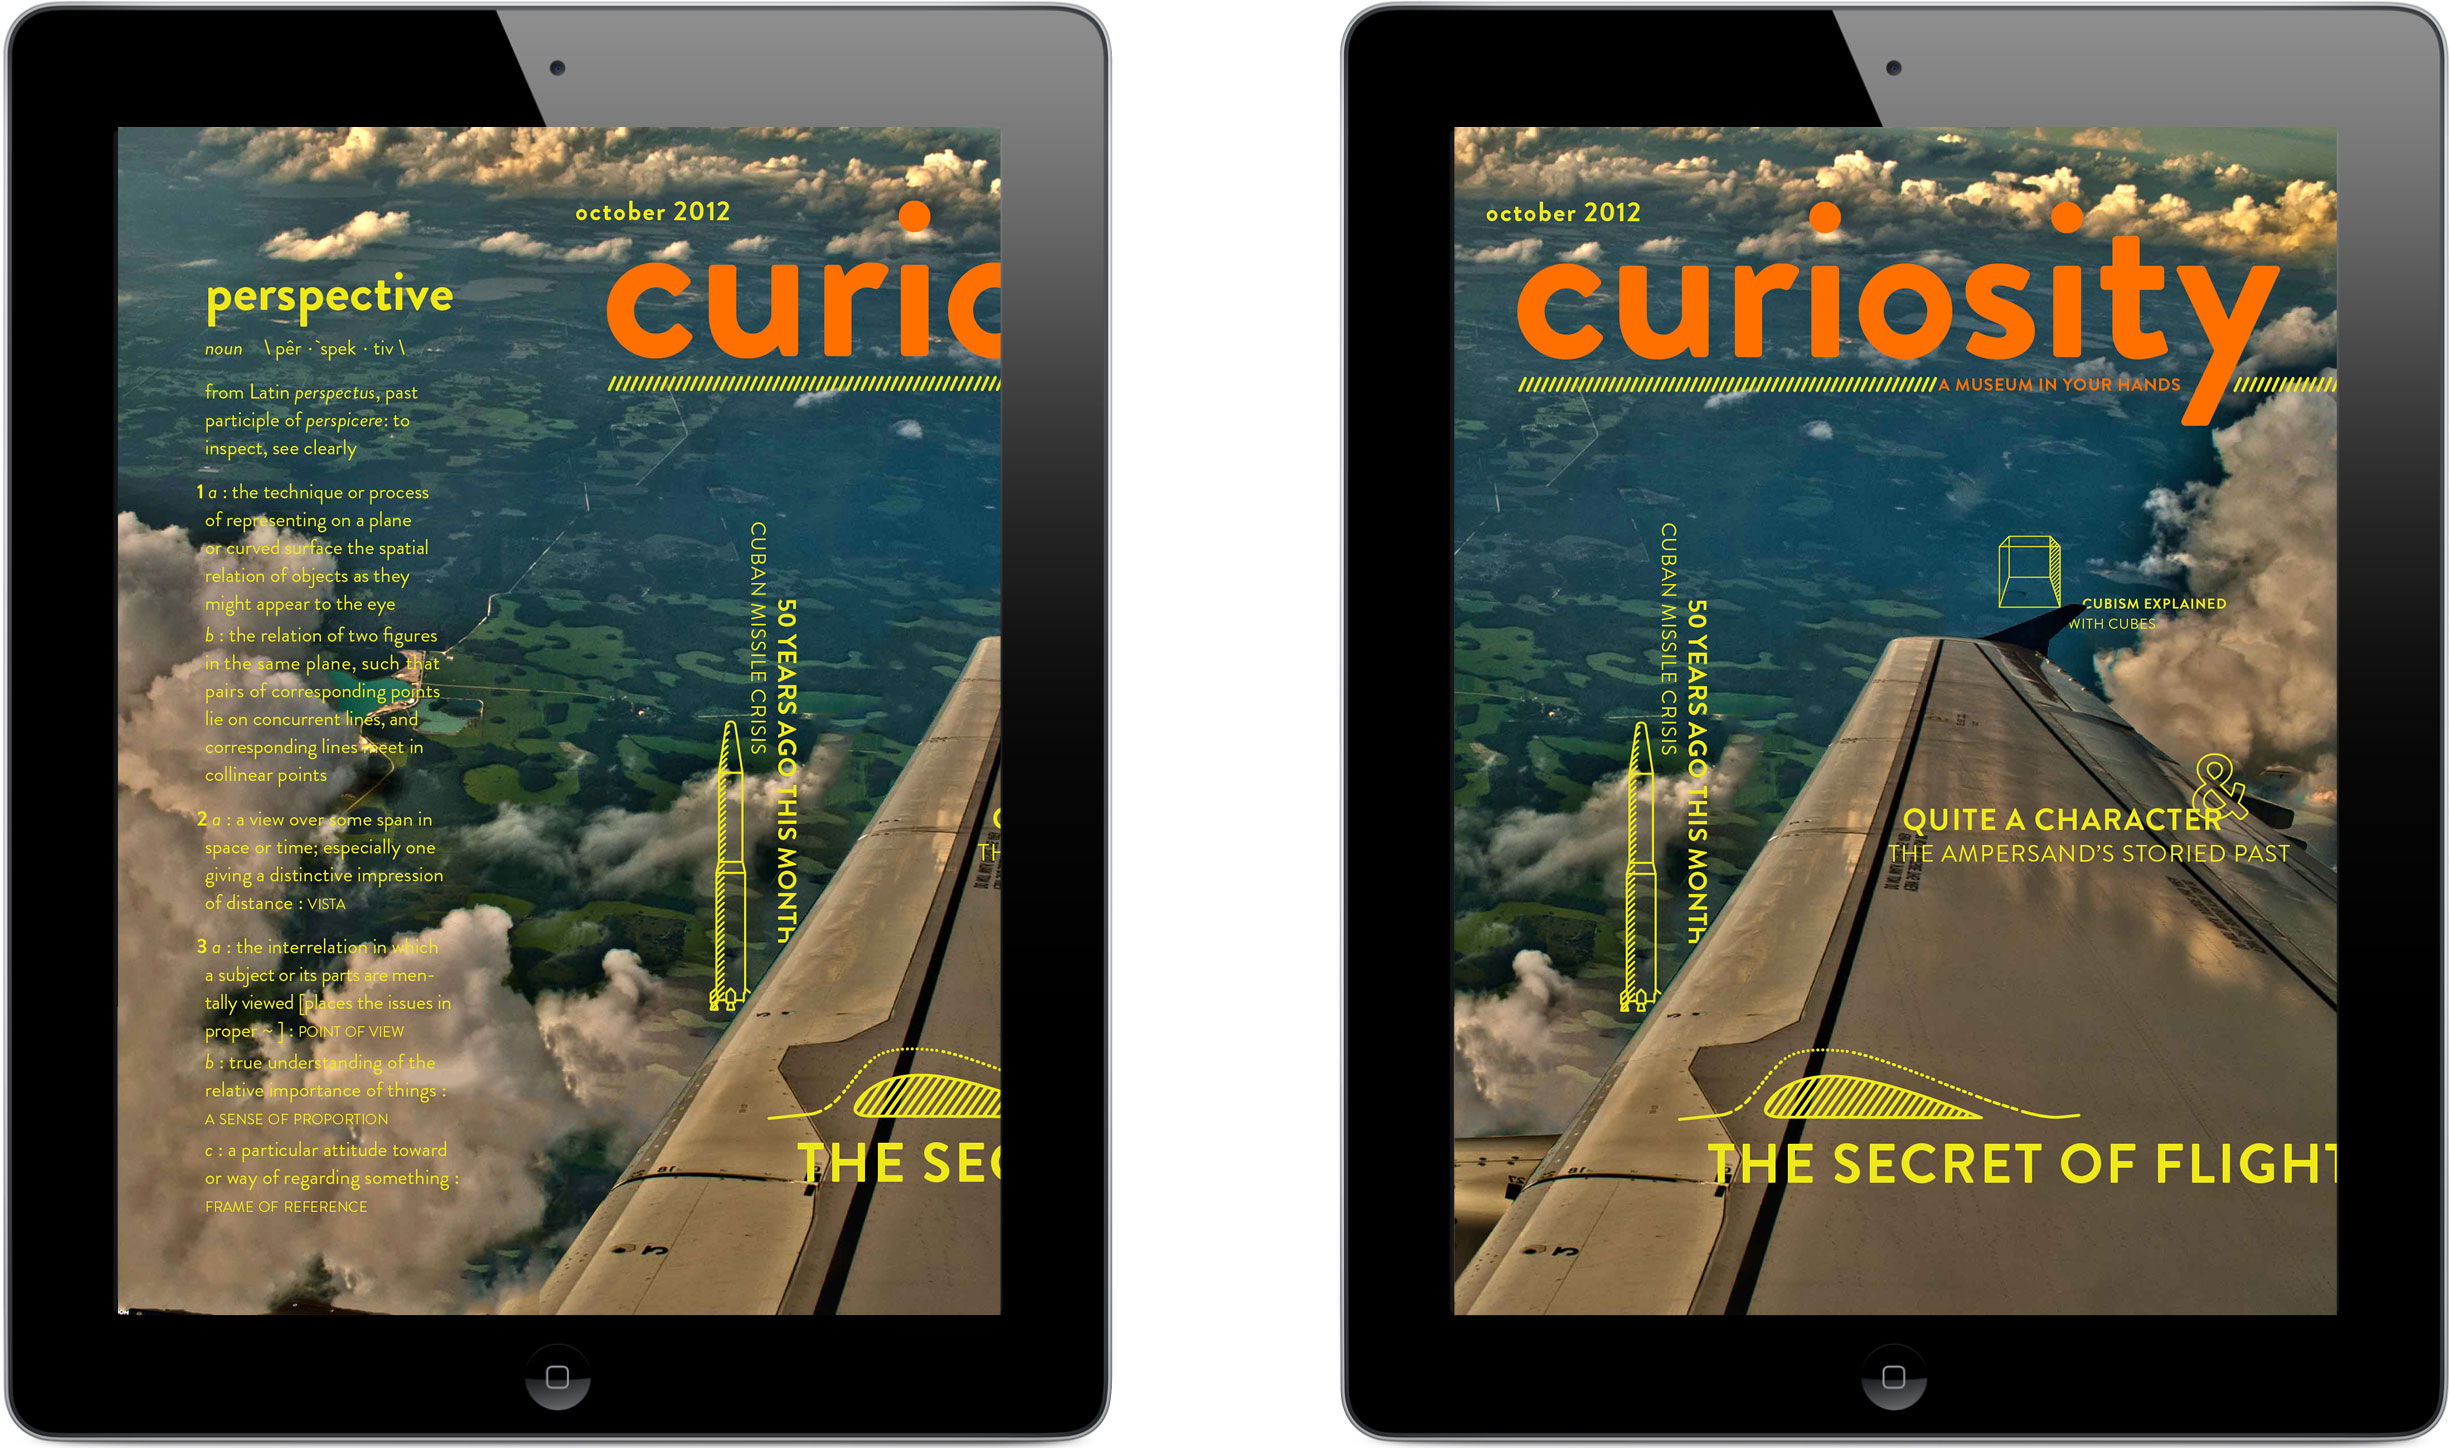 """The iPad version of Curiosity can scroll a little to the left to reveal the theme """"perspective""""'s definition."""